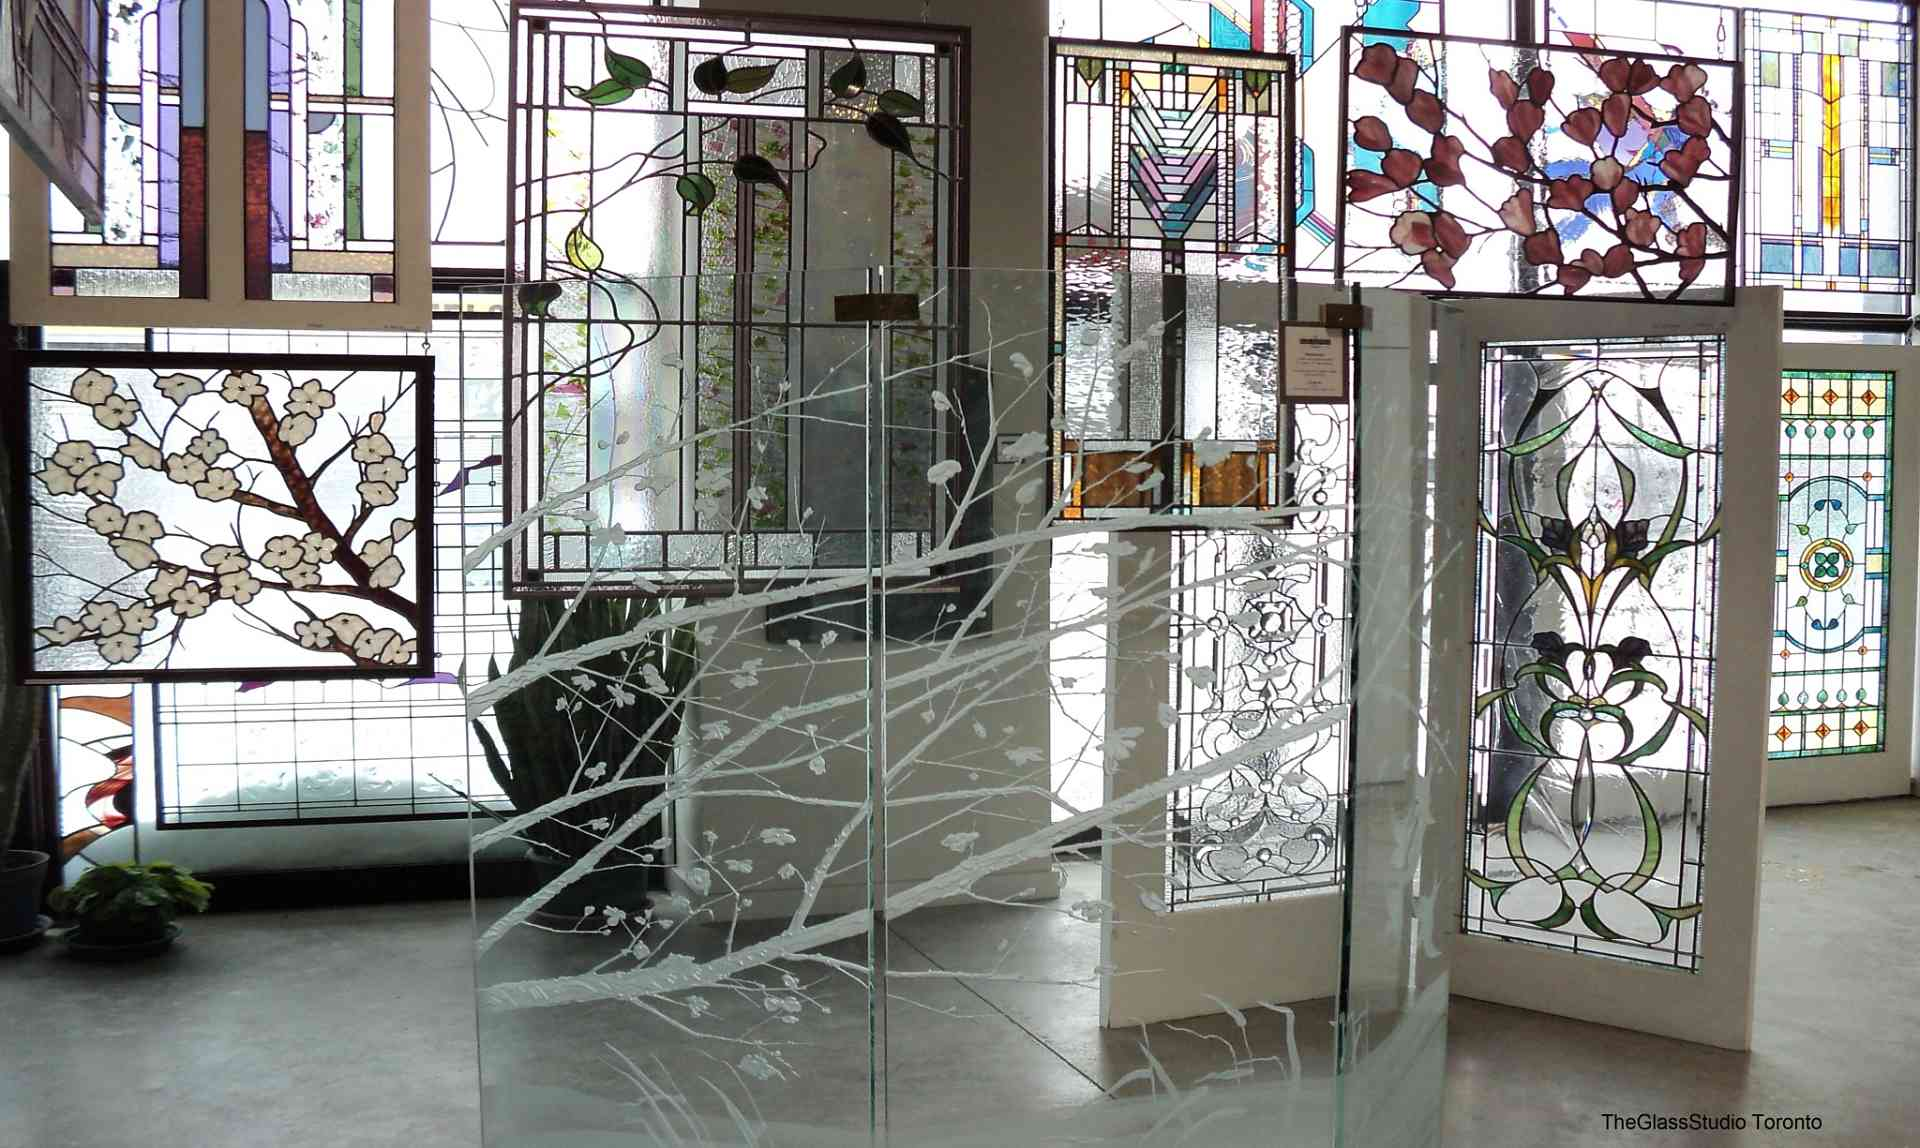 Stained glass windows in The Glass Studio's Toronto showroom